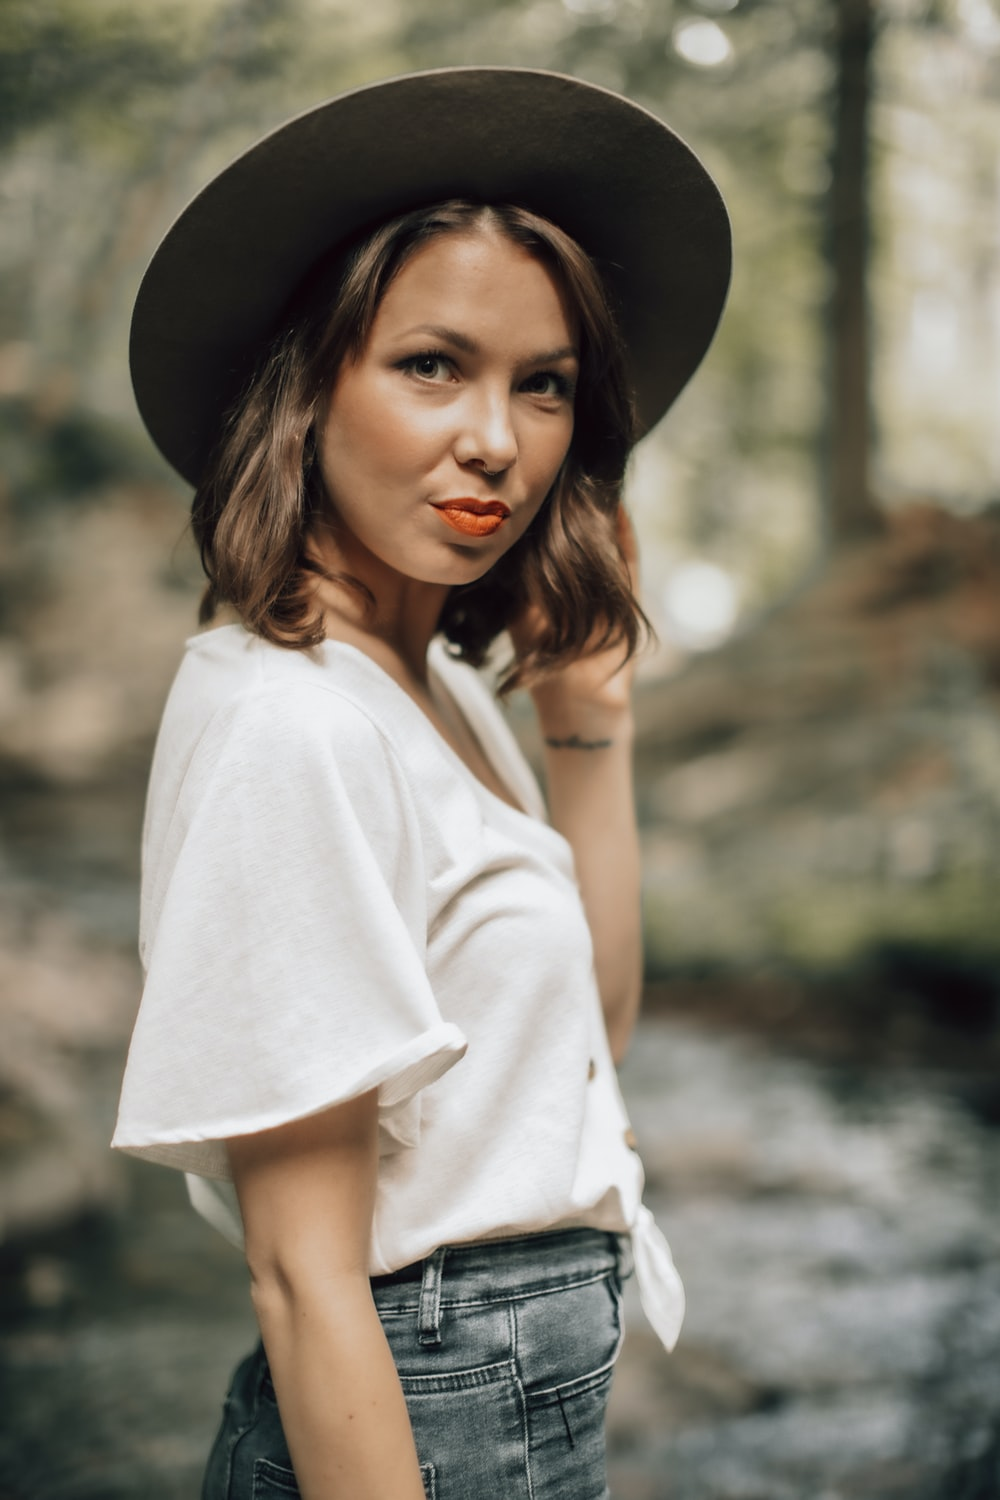 woman in white long sleeve shirt wearing black hat